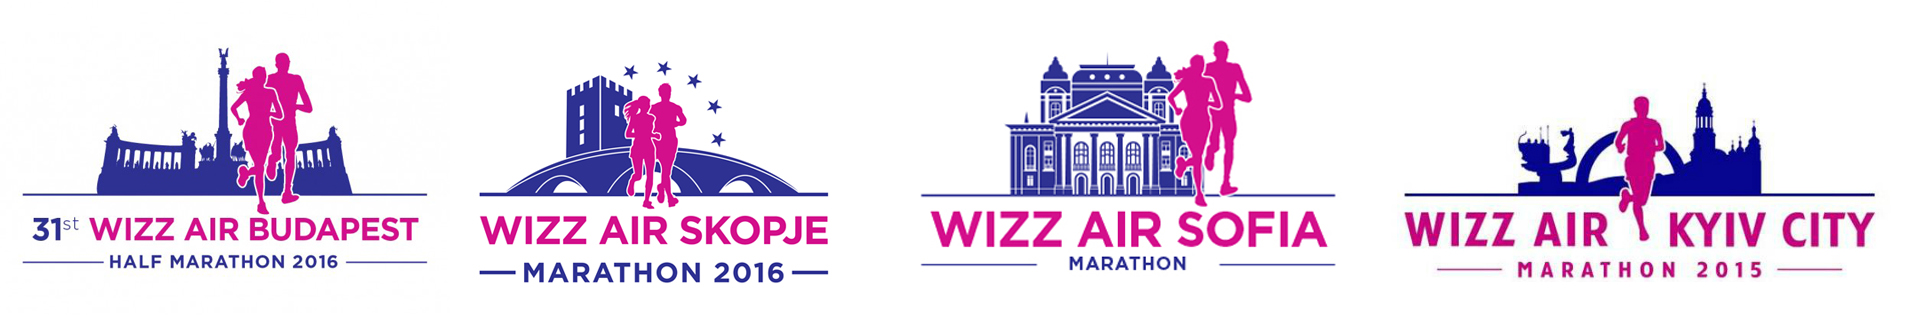 Wizz Air Marathon